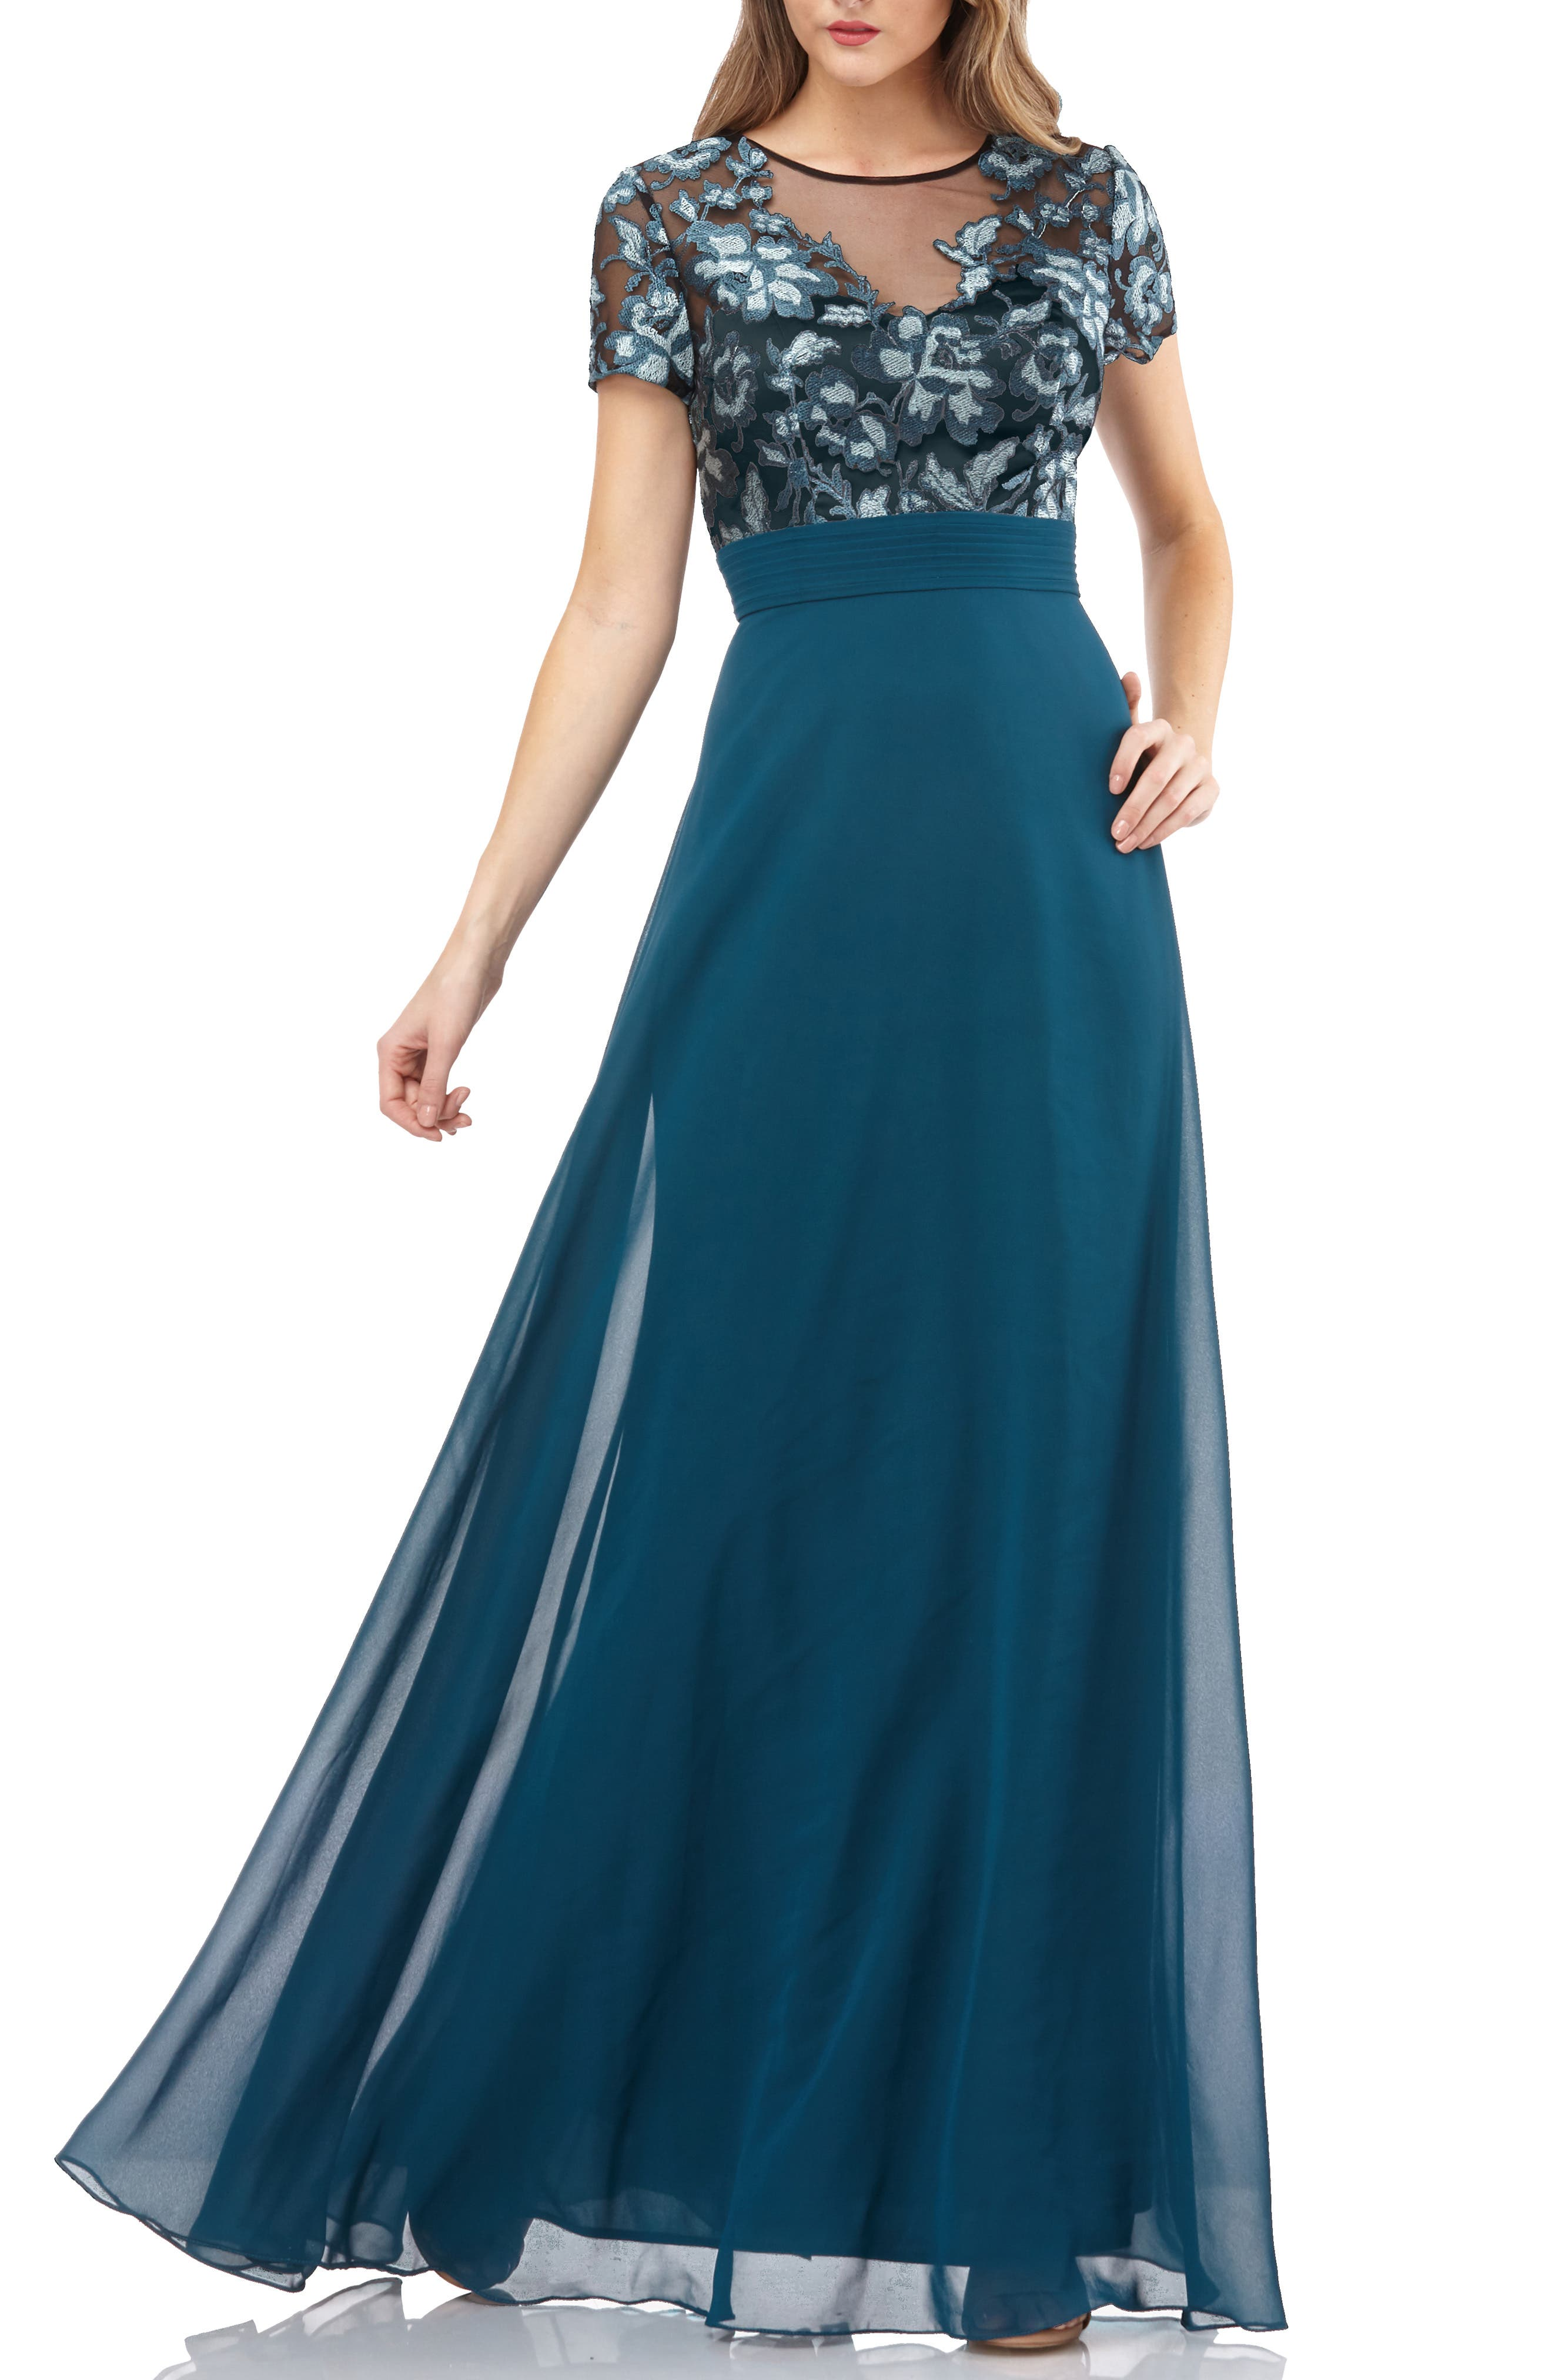 Js Collections Short Sleeve Embroidered Bodice Evening Dress, Green